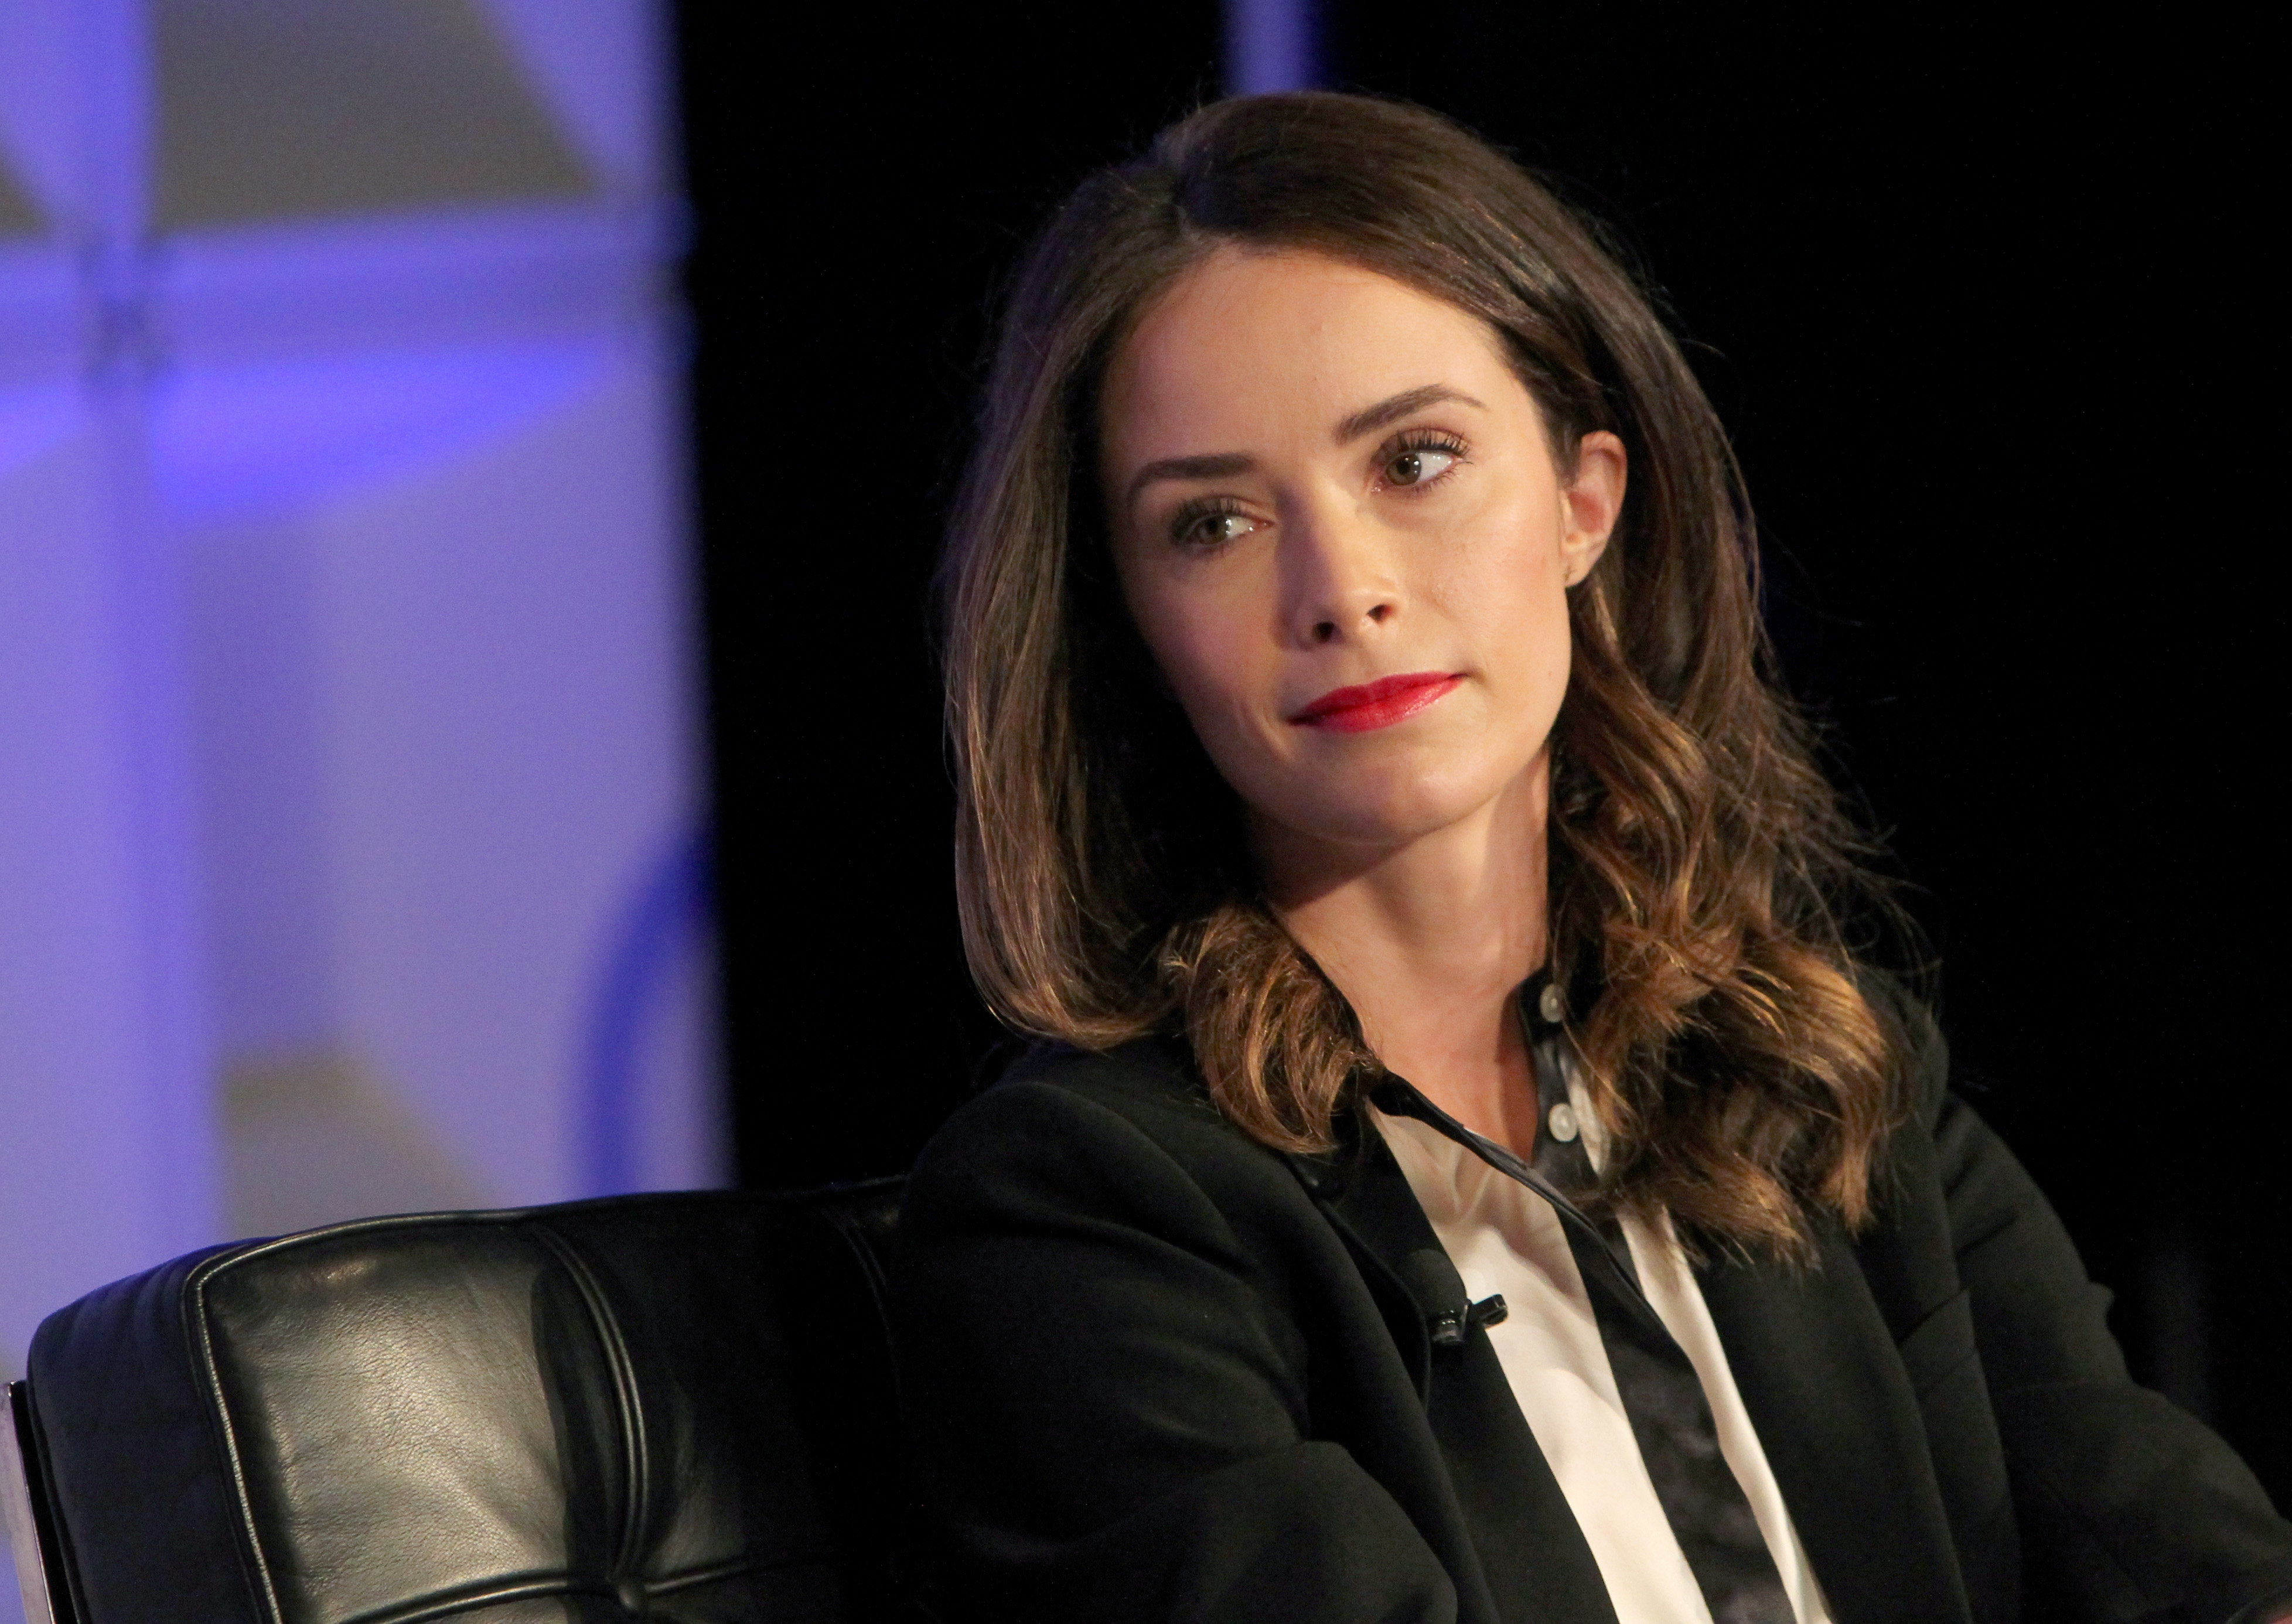 Abigail Spencer is believed to be a victim of The Fappening hacks. (Getty)